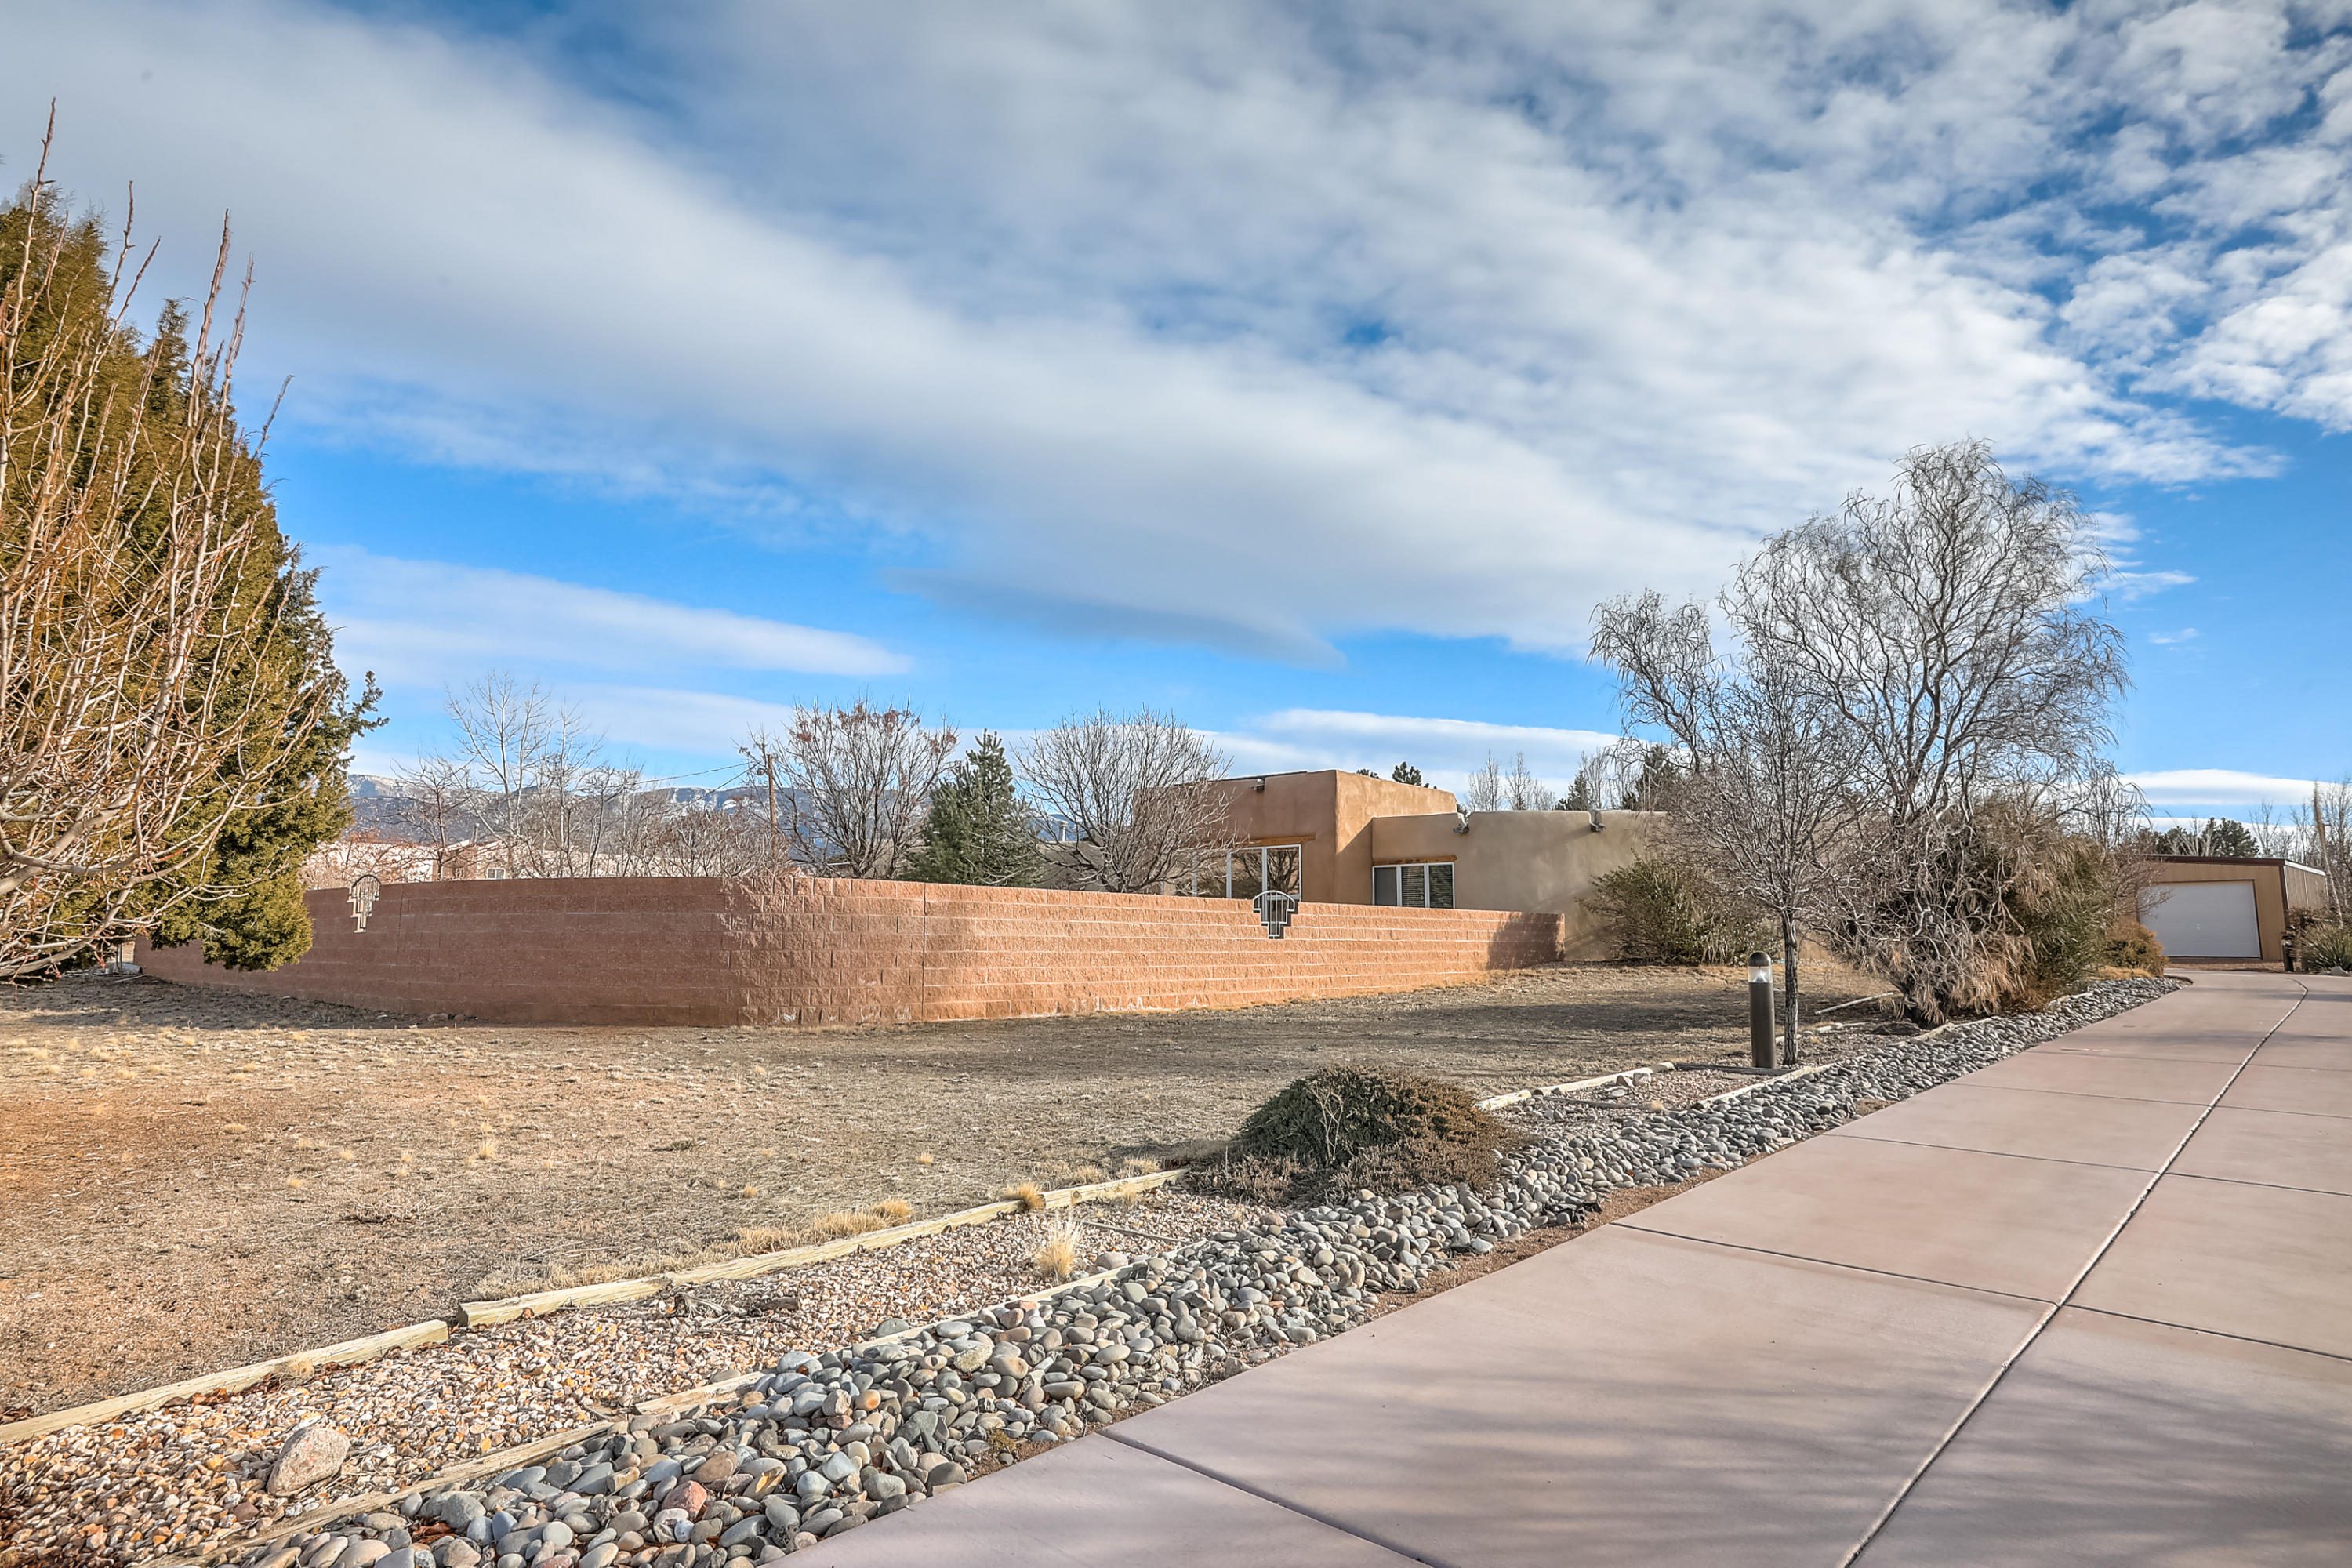 Welcome to this beautiful custom one story Adobe home in NAA w/stunning views of the Sandia Mtns. Southwest ambiance & luxurious appts include marble plastered walls, brick floors, beam & knotty pine ceilings, Pella windows & exposed abode walls. Foyer sitting rm, spacious living area w/wood burning stove, wet bar & picturesque windows. Updated cooks kitchen w/granite ctps, breakfast bar, hickory cabinets, Kiva fireplace & stainless steel appliances. Master suite w/2 walk-in closets, lg updated shower, soaking jetted tub. 2nd Master suite with 3/4 updated bath, Kiva f/p & walk-in closet plus roomy 3rd bedroom & hall full bath. Outdoor living for the whole family include a large covered patio, gated heated pool w/cover, 2.5 attached garage + Oversized 2CG/workshop, storage & solar panels!